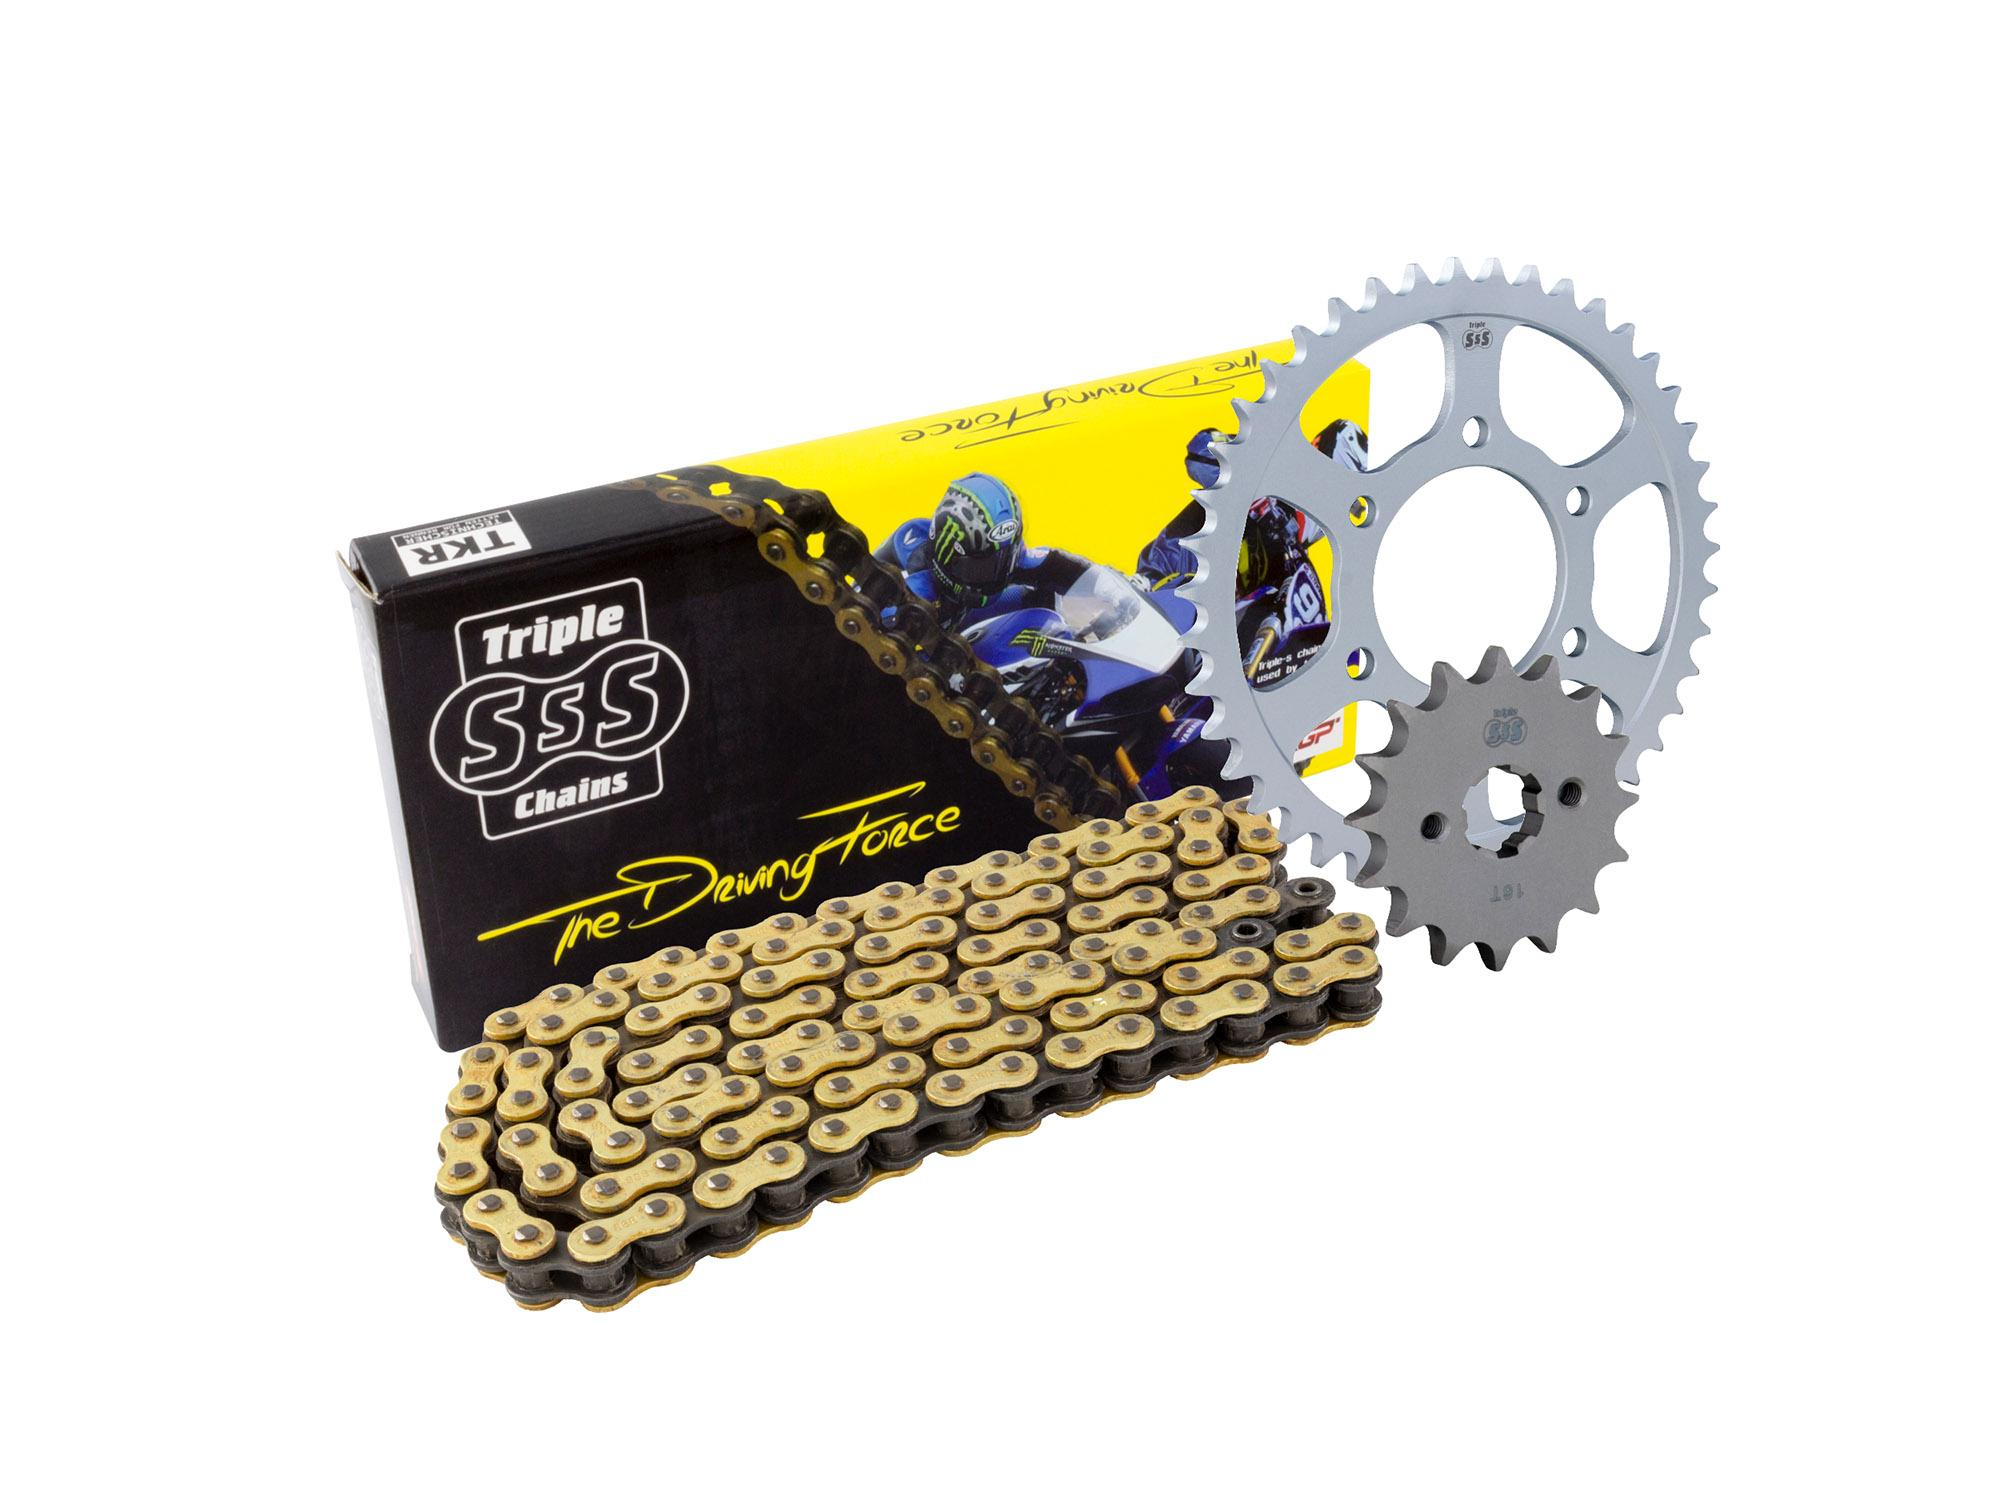 BMW F650 GS 09-10 Chain & Sprocket Kit: 17T Front, 41T Rear, HD O-Ring Gold Chain 525H 116Link